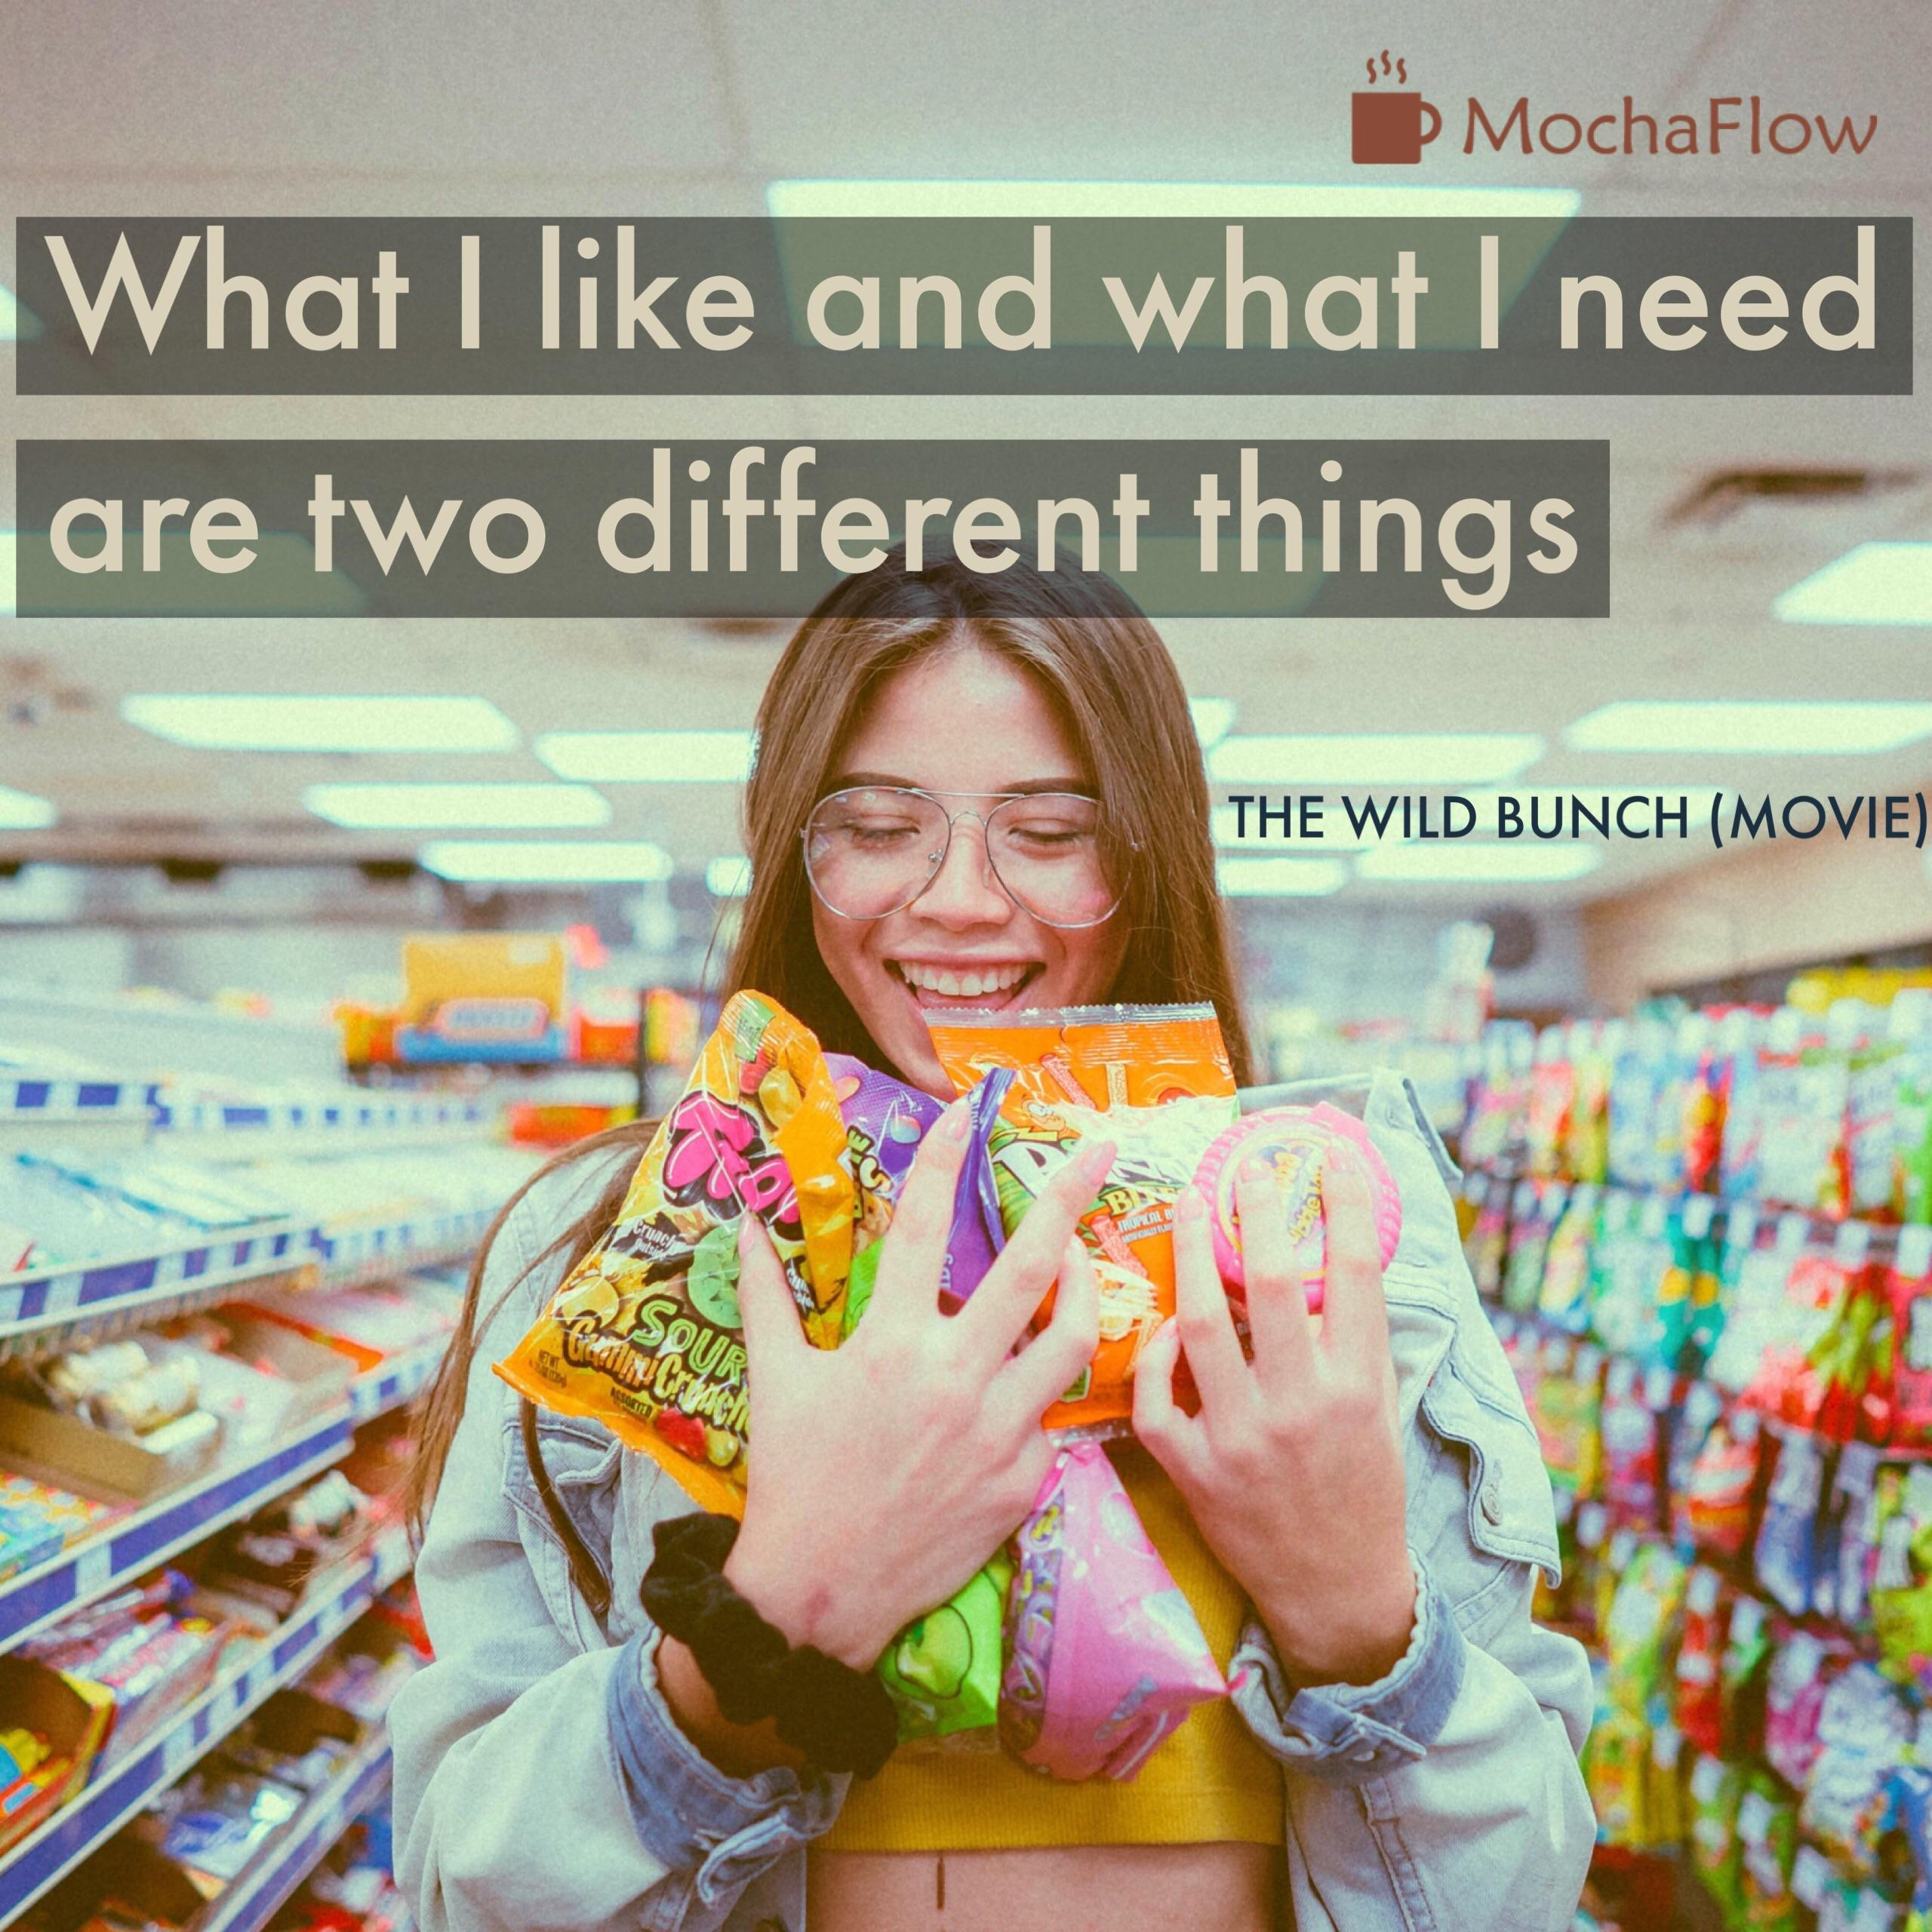 """m '9 MochaFlow What I like and what I need are two different things """""""" - :3. THE WILD BUNCH (MOVIE) .1; . ' """"' 1N . 7 , ,' \' . 'Xi https://inspirational.ly"""